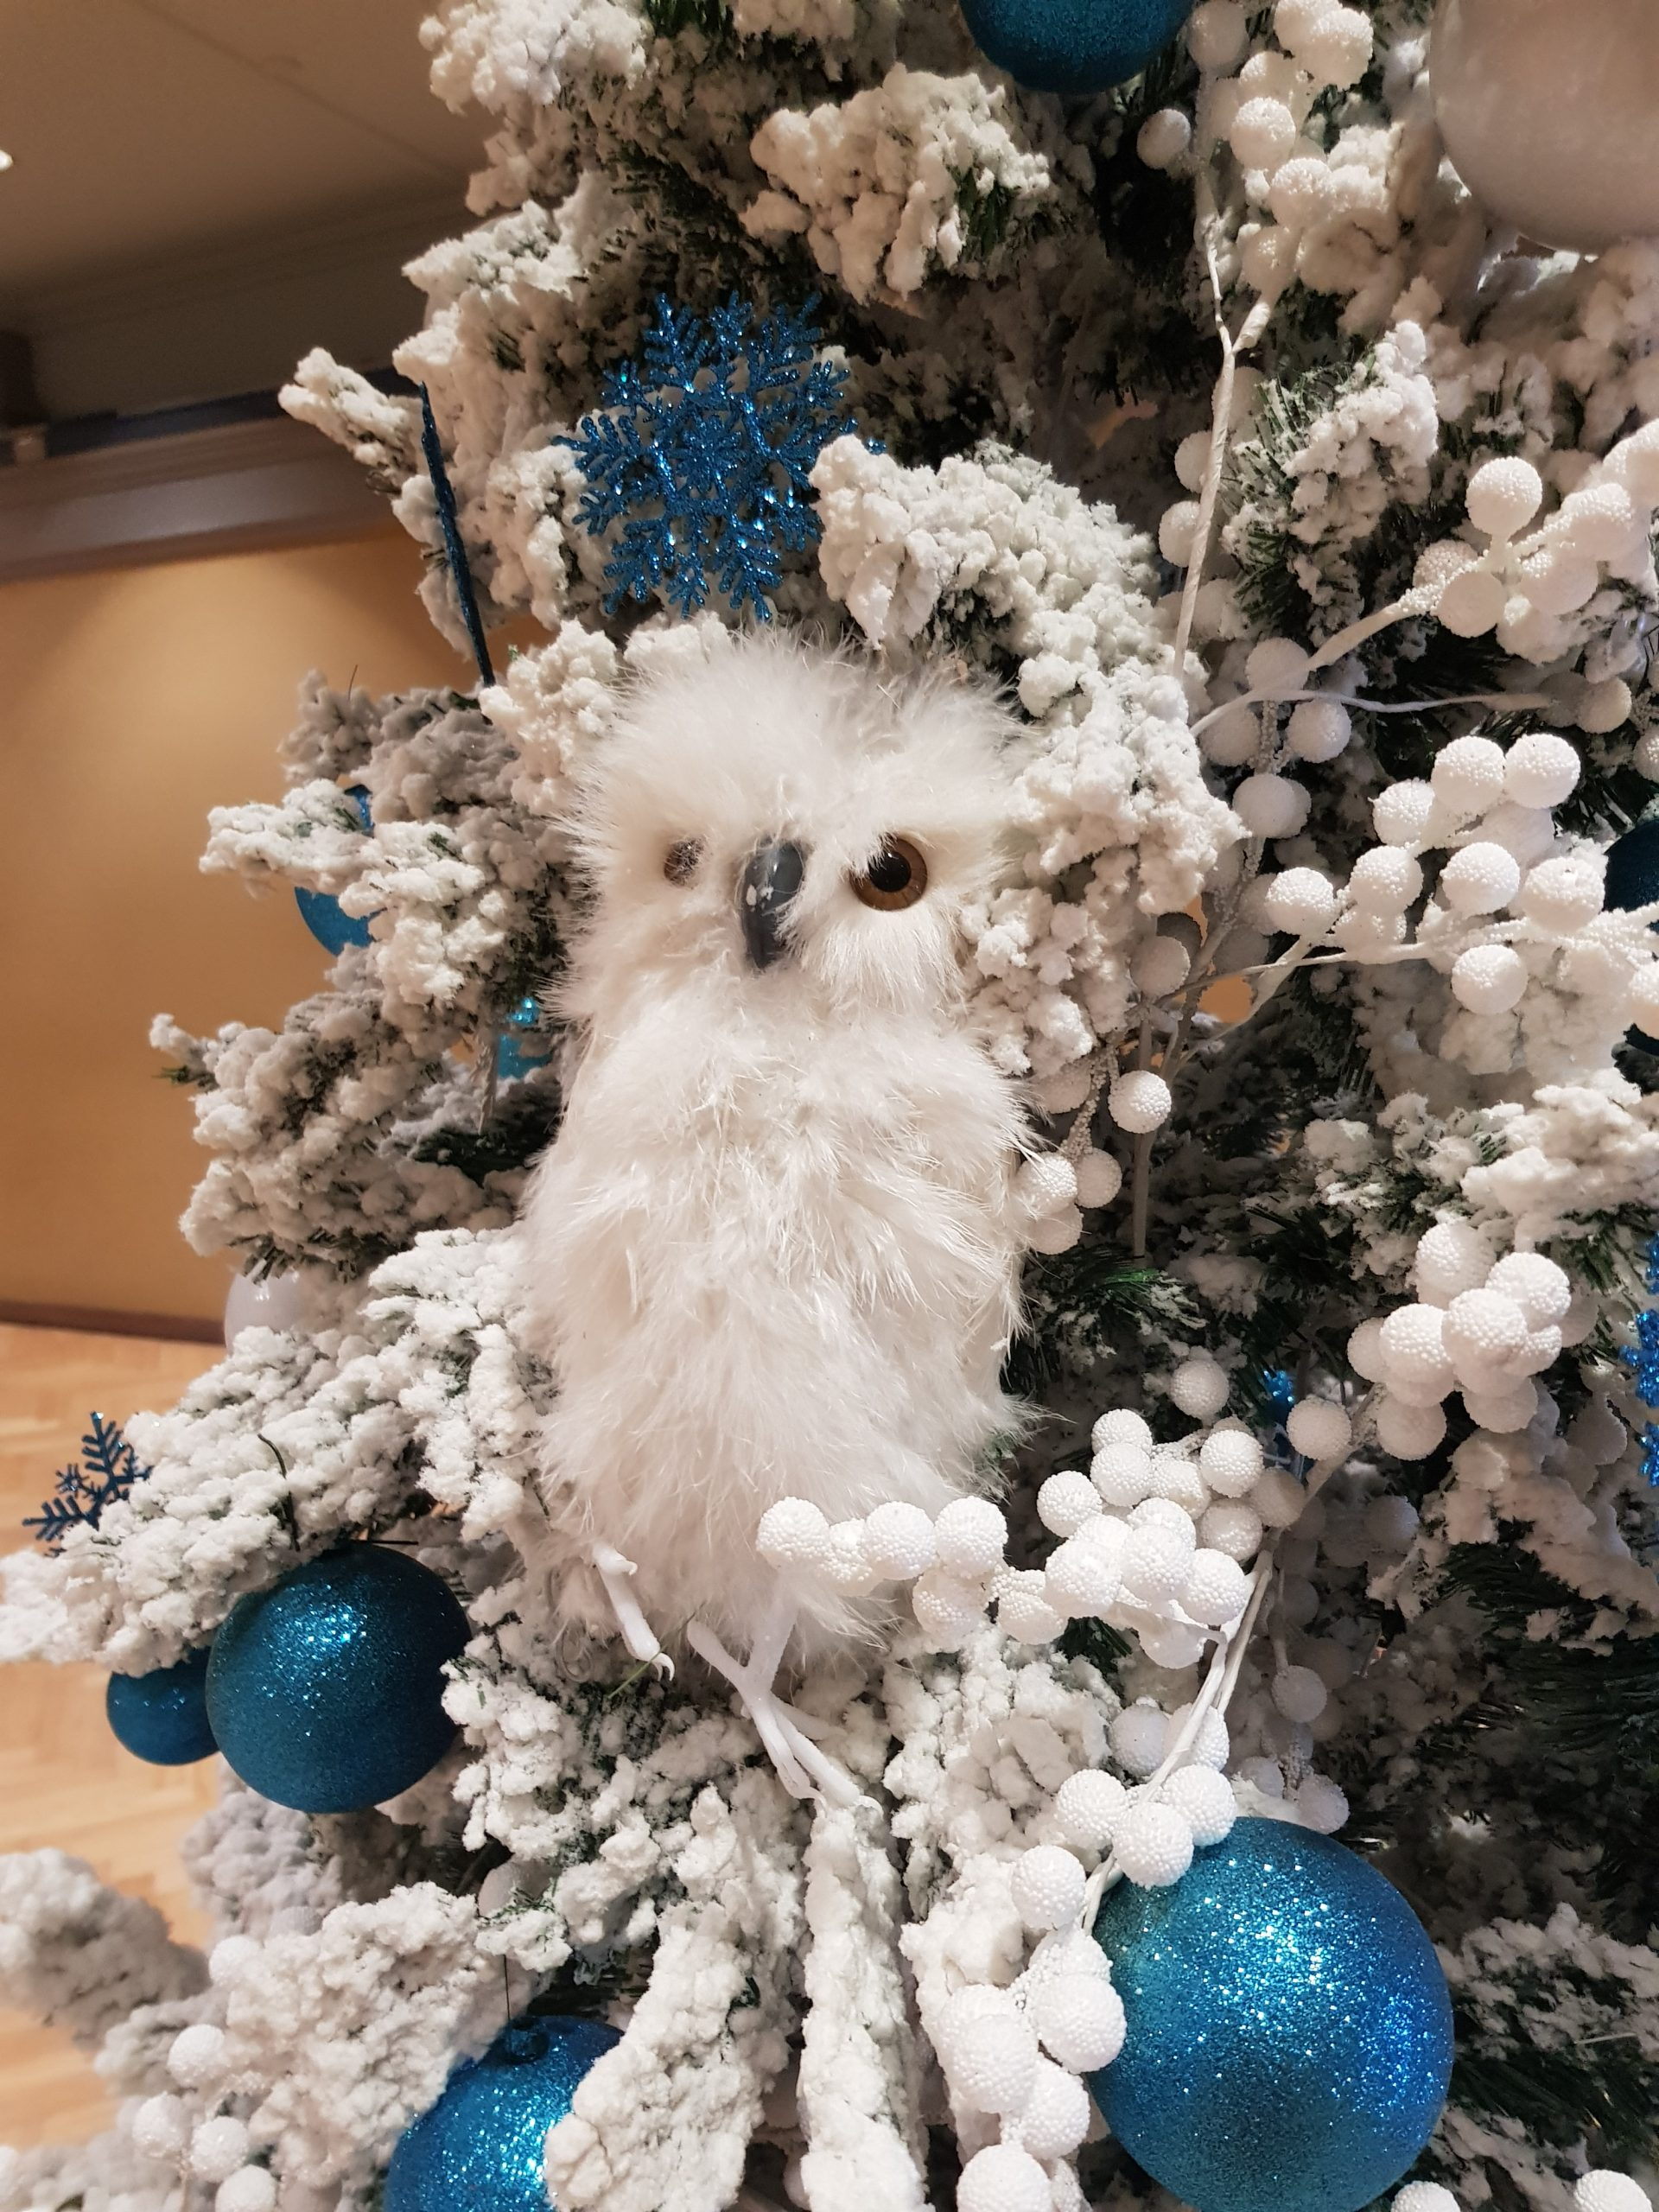 Snowy owl in our Christmas trees